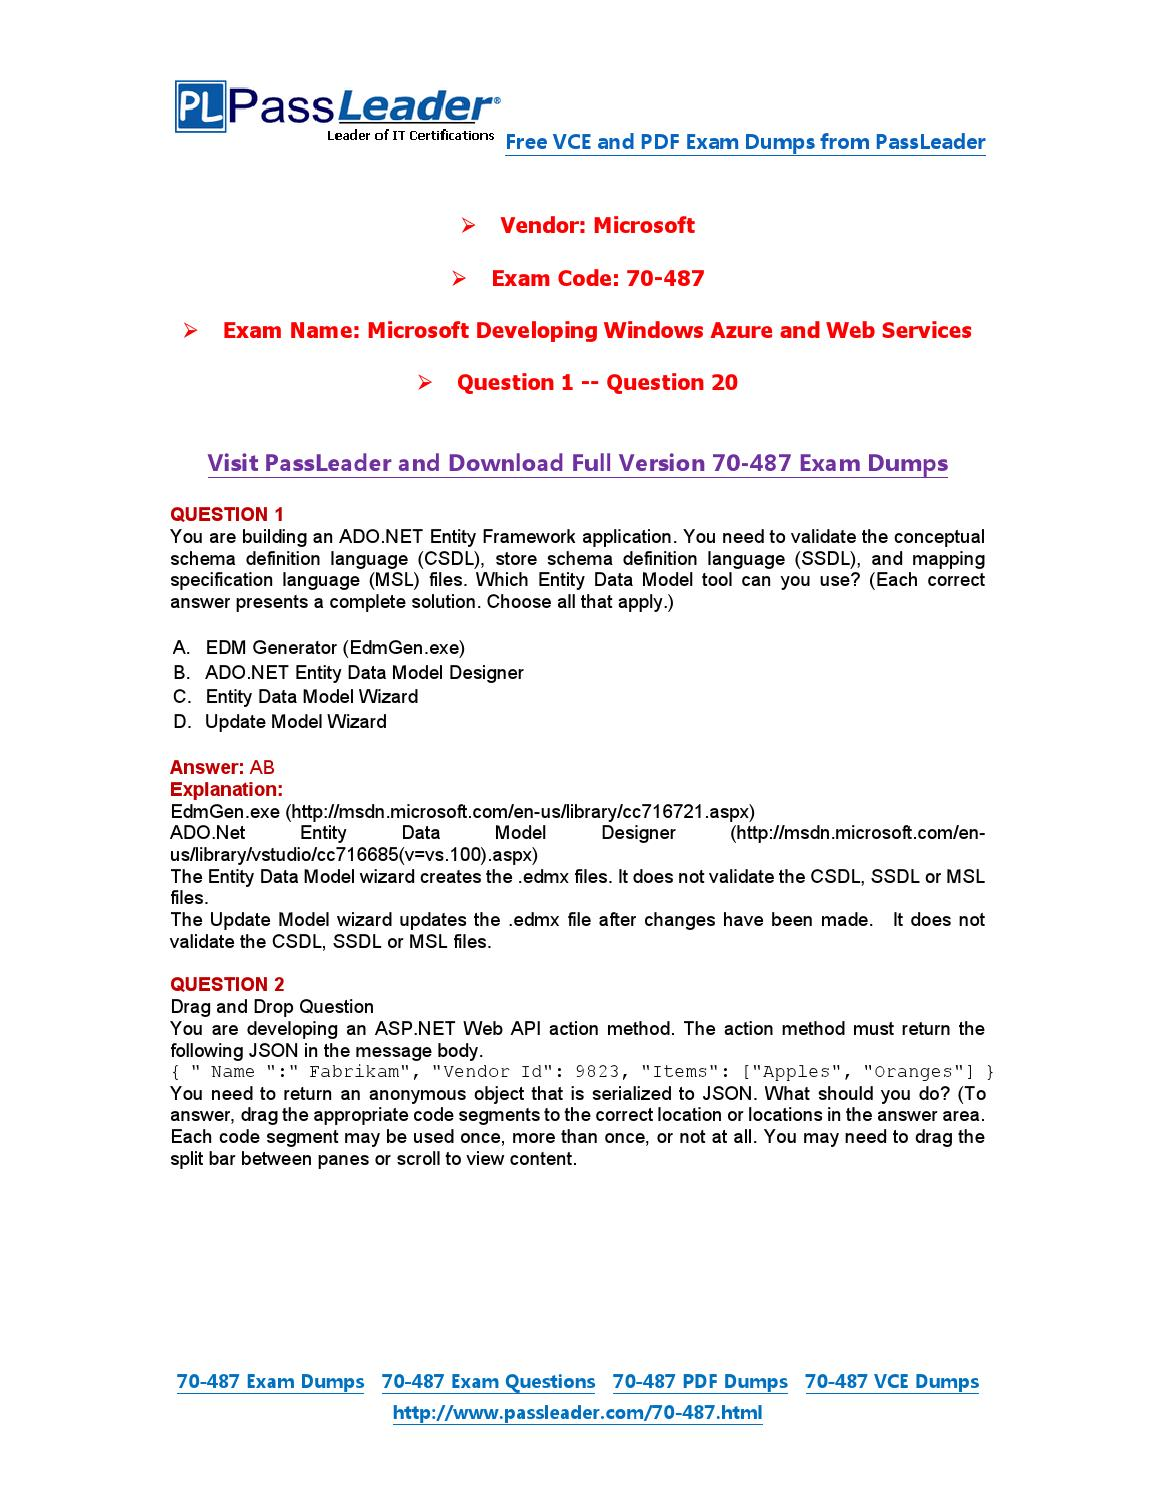 2016 New 70-487 Exam Dumps For Free (VCE and PDF) (1-20) by